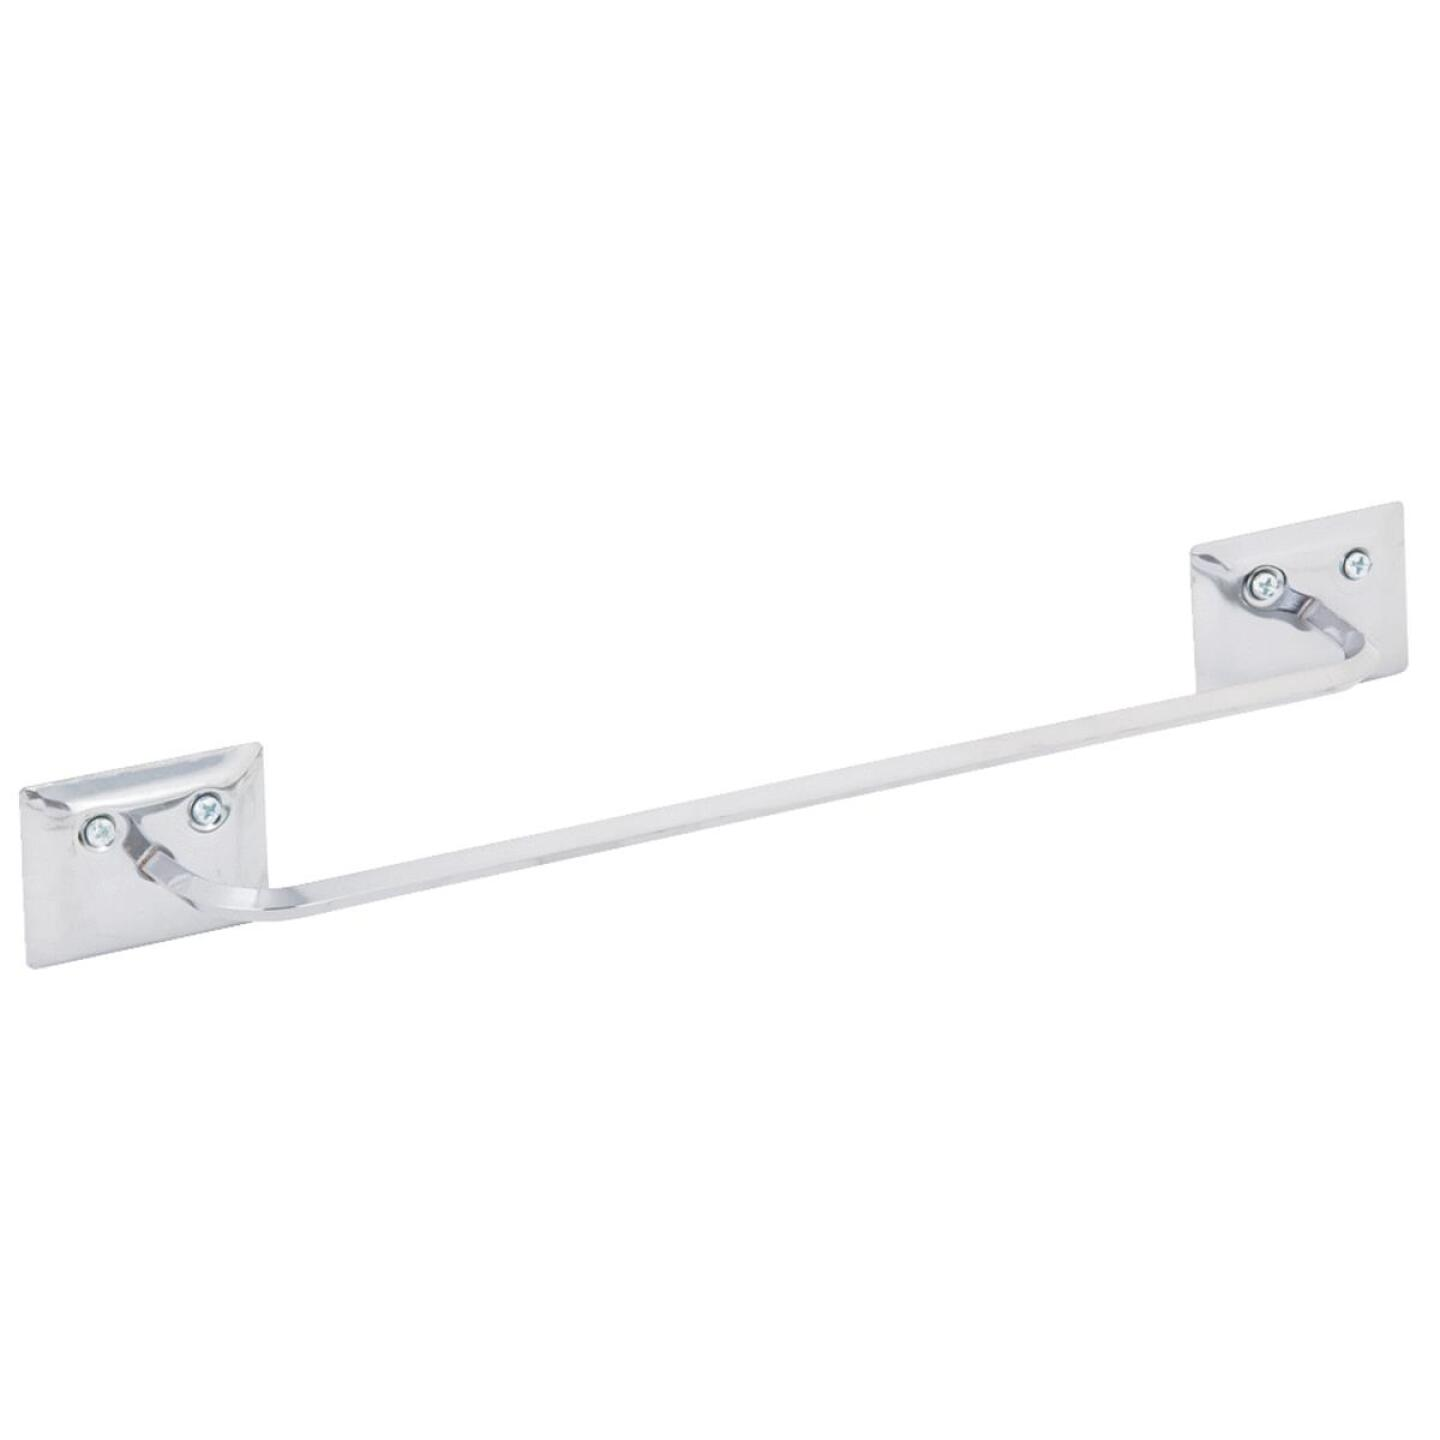 Decko Diamond Bar Design 12 In. Chrome Towel Bar Image 1